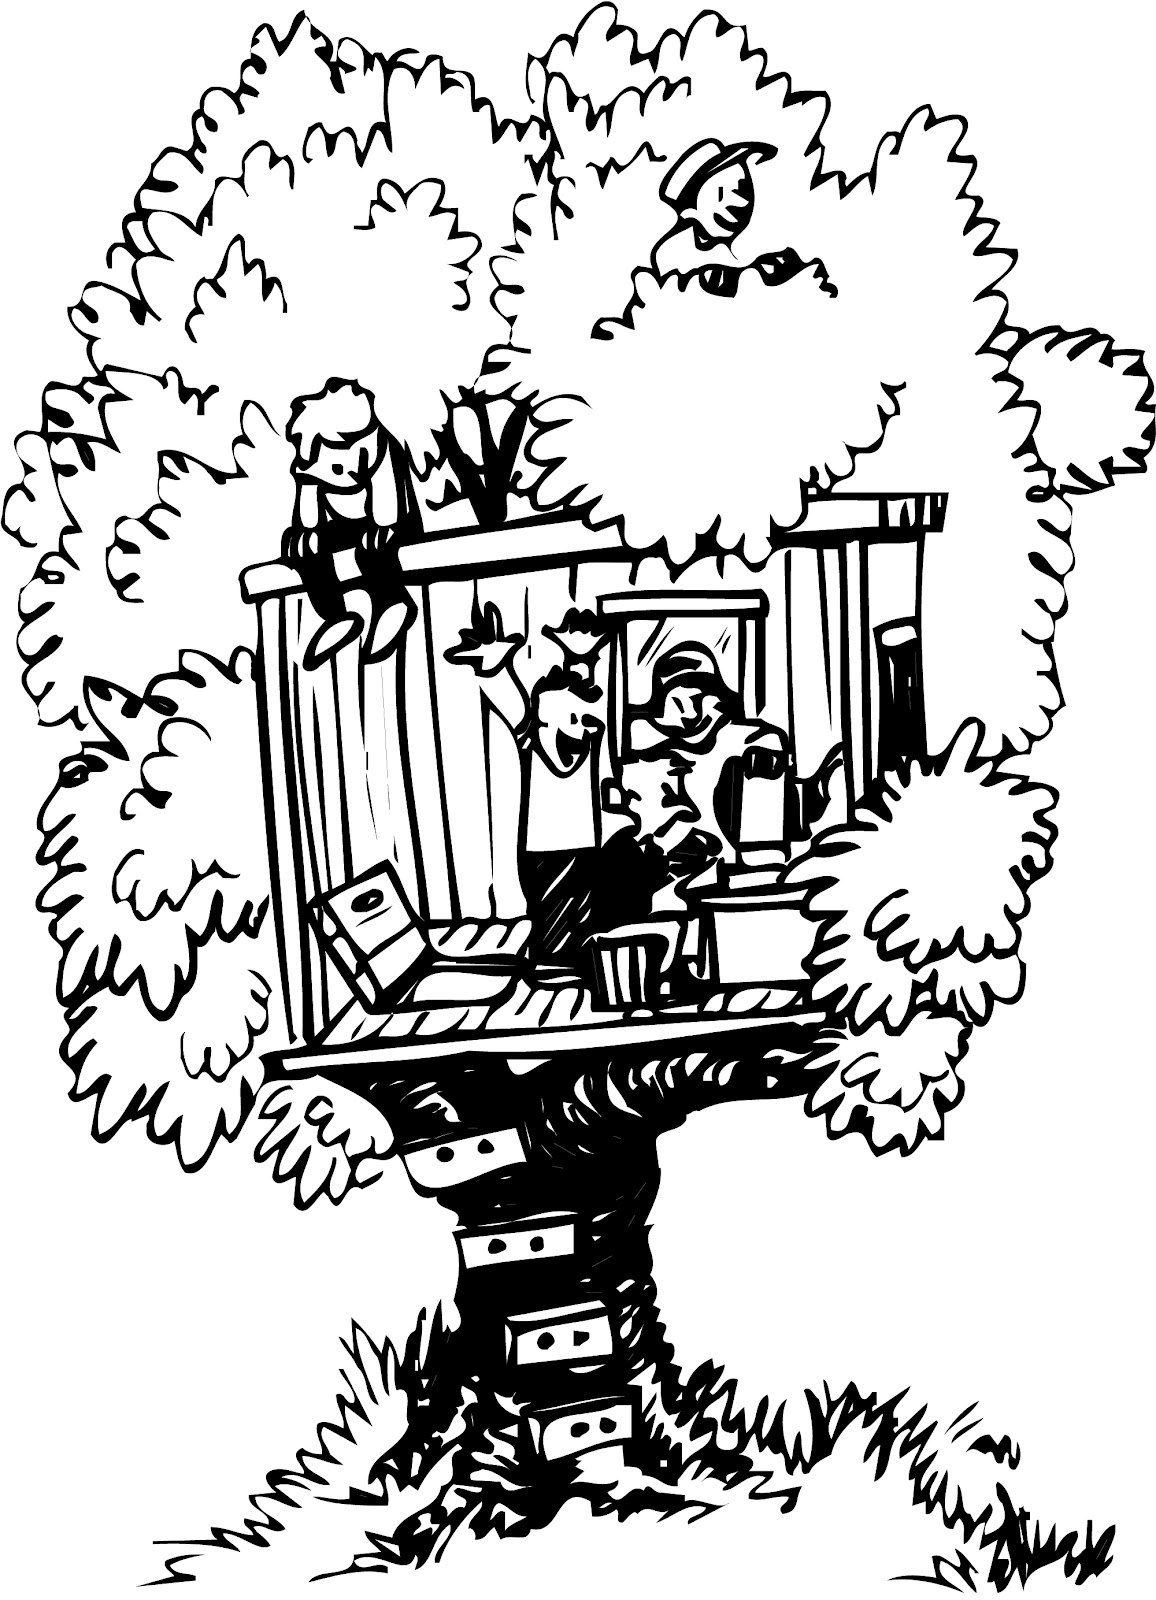 Jack Magic Tree House Coloring Page Pictures to Pin on Pinterest